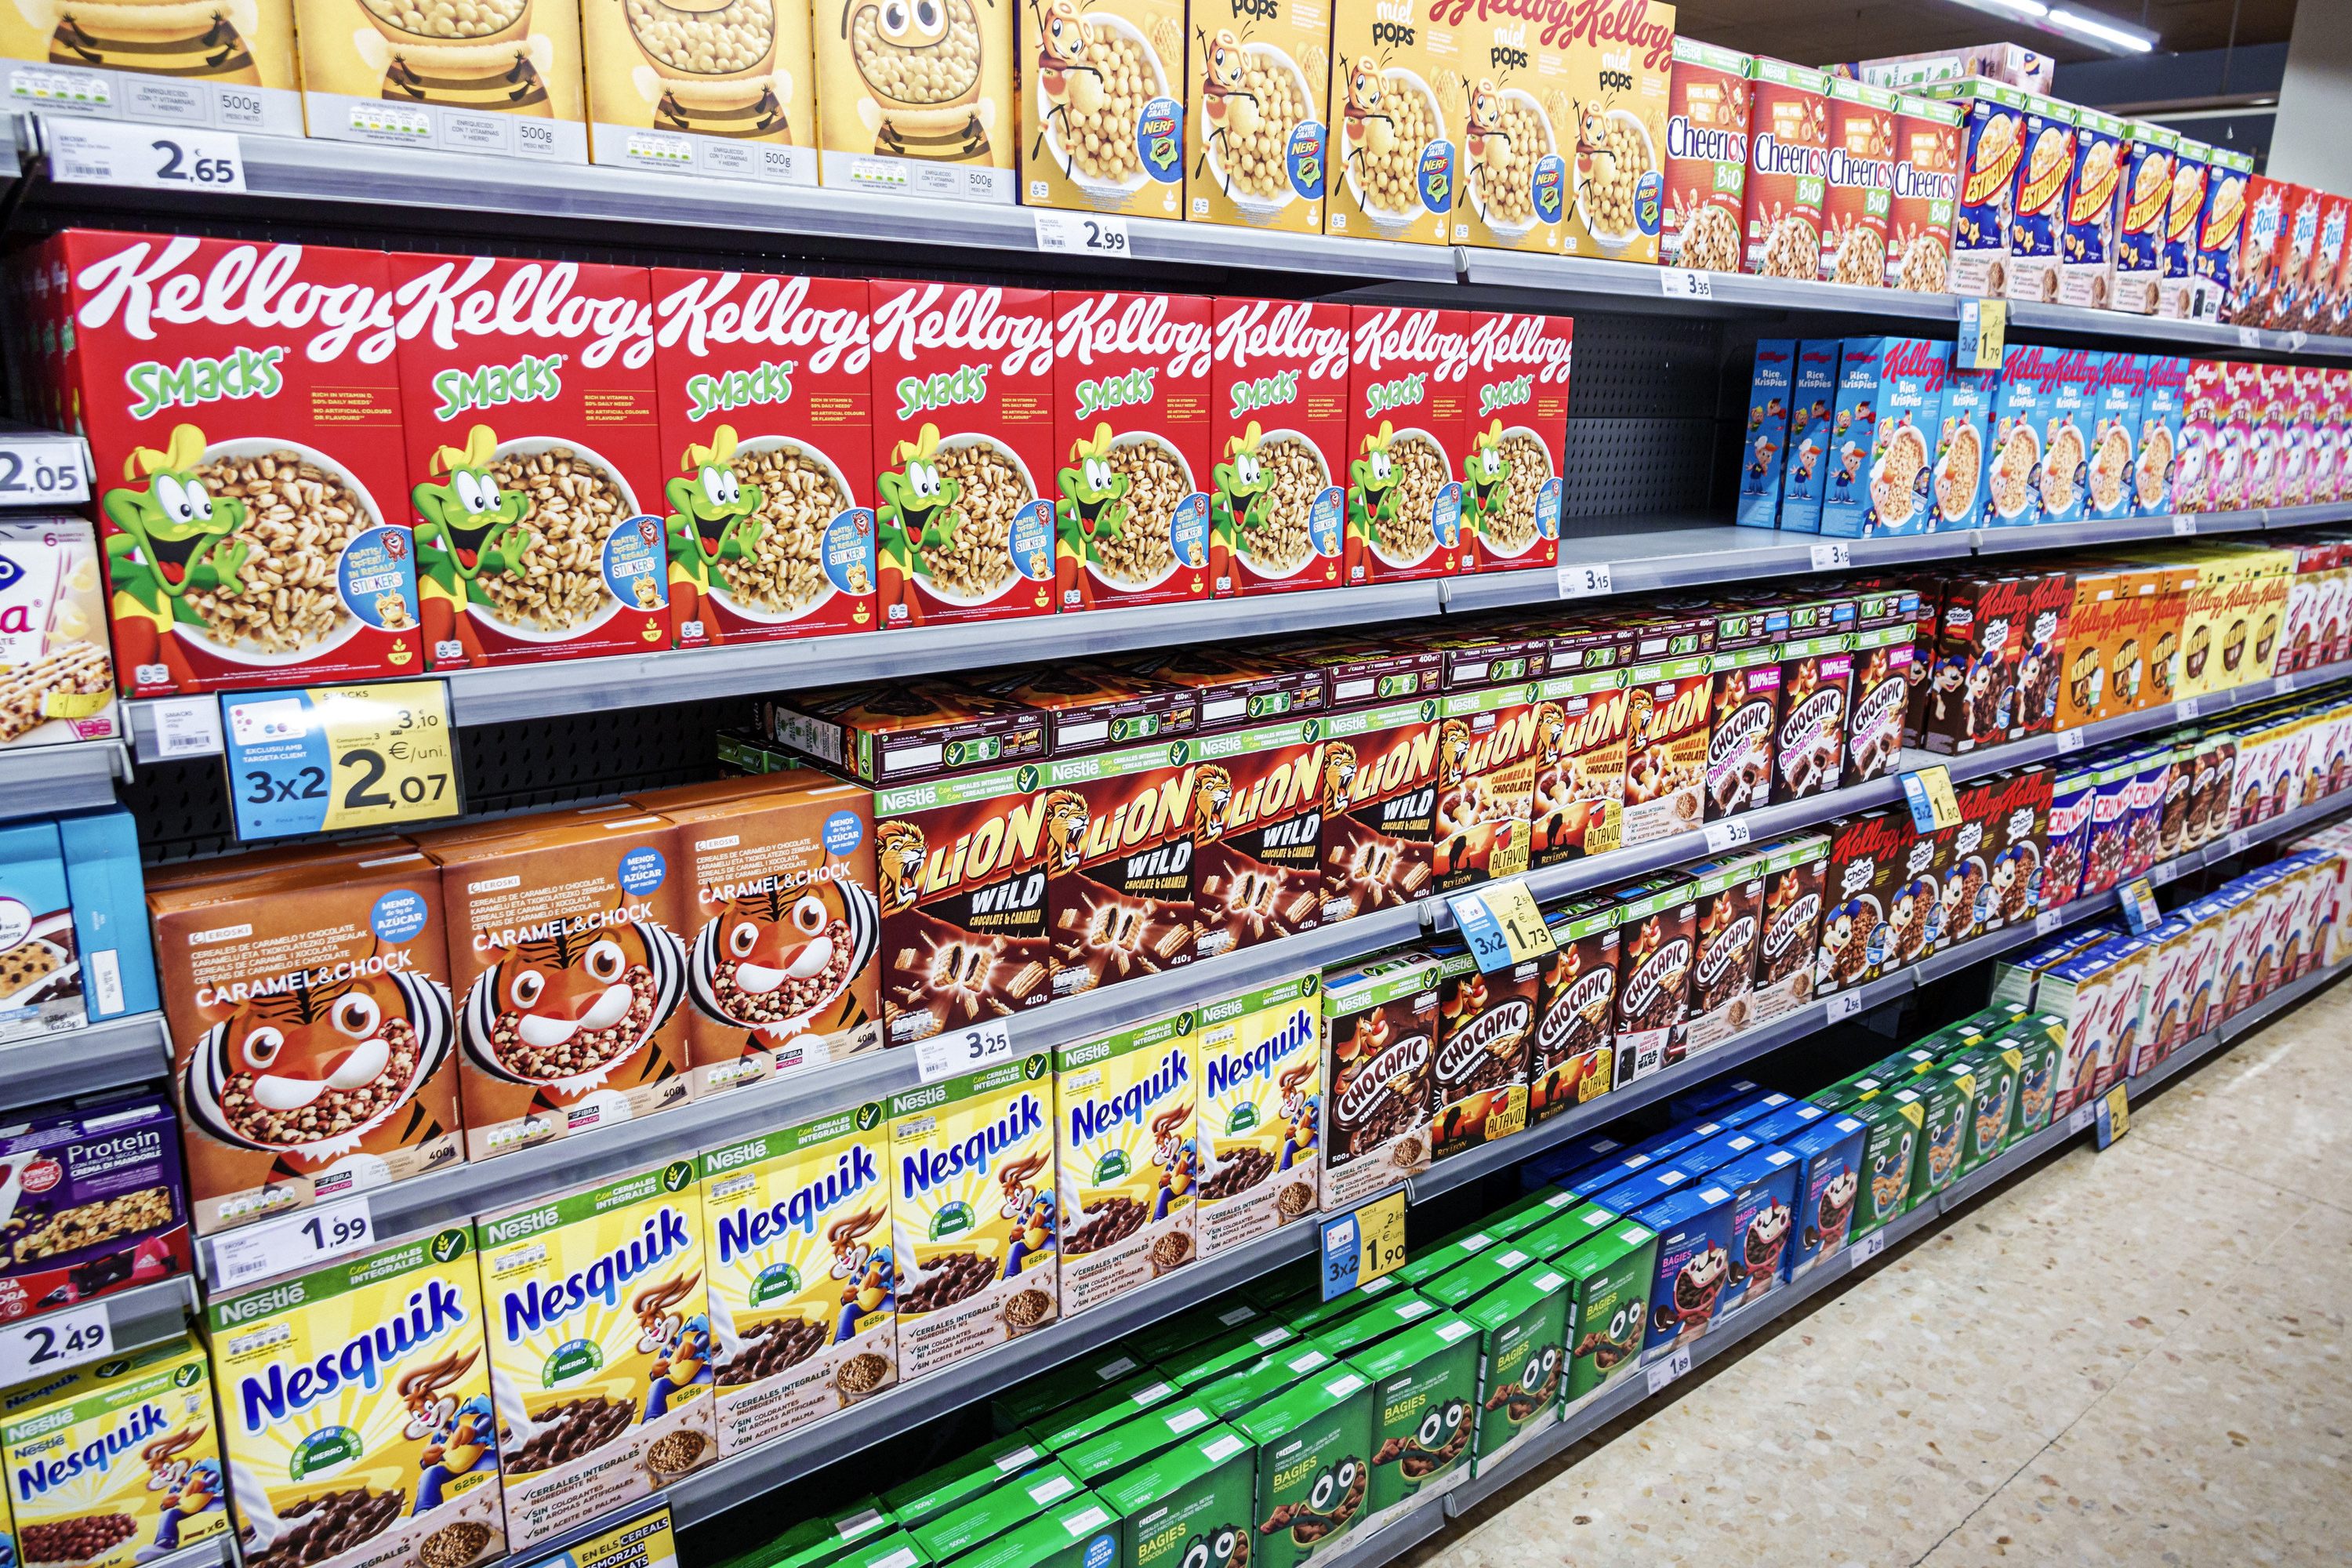 Aisle of cereal